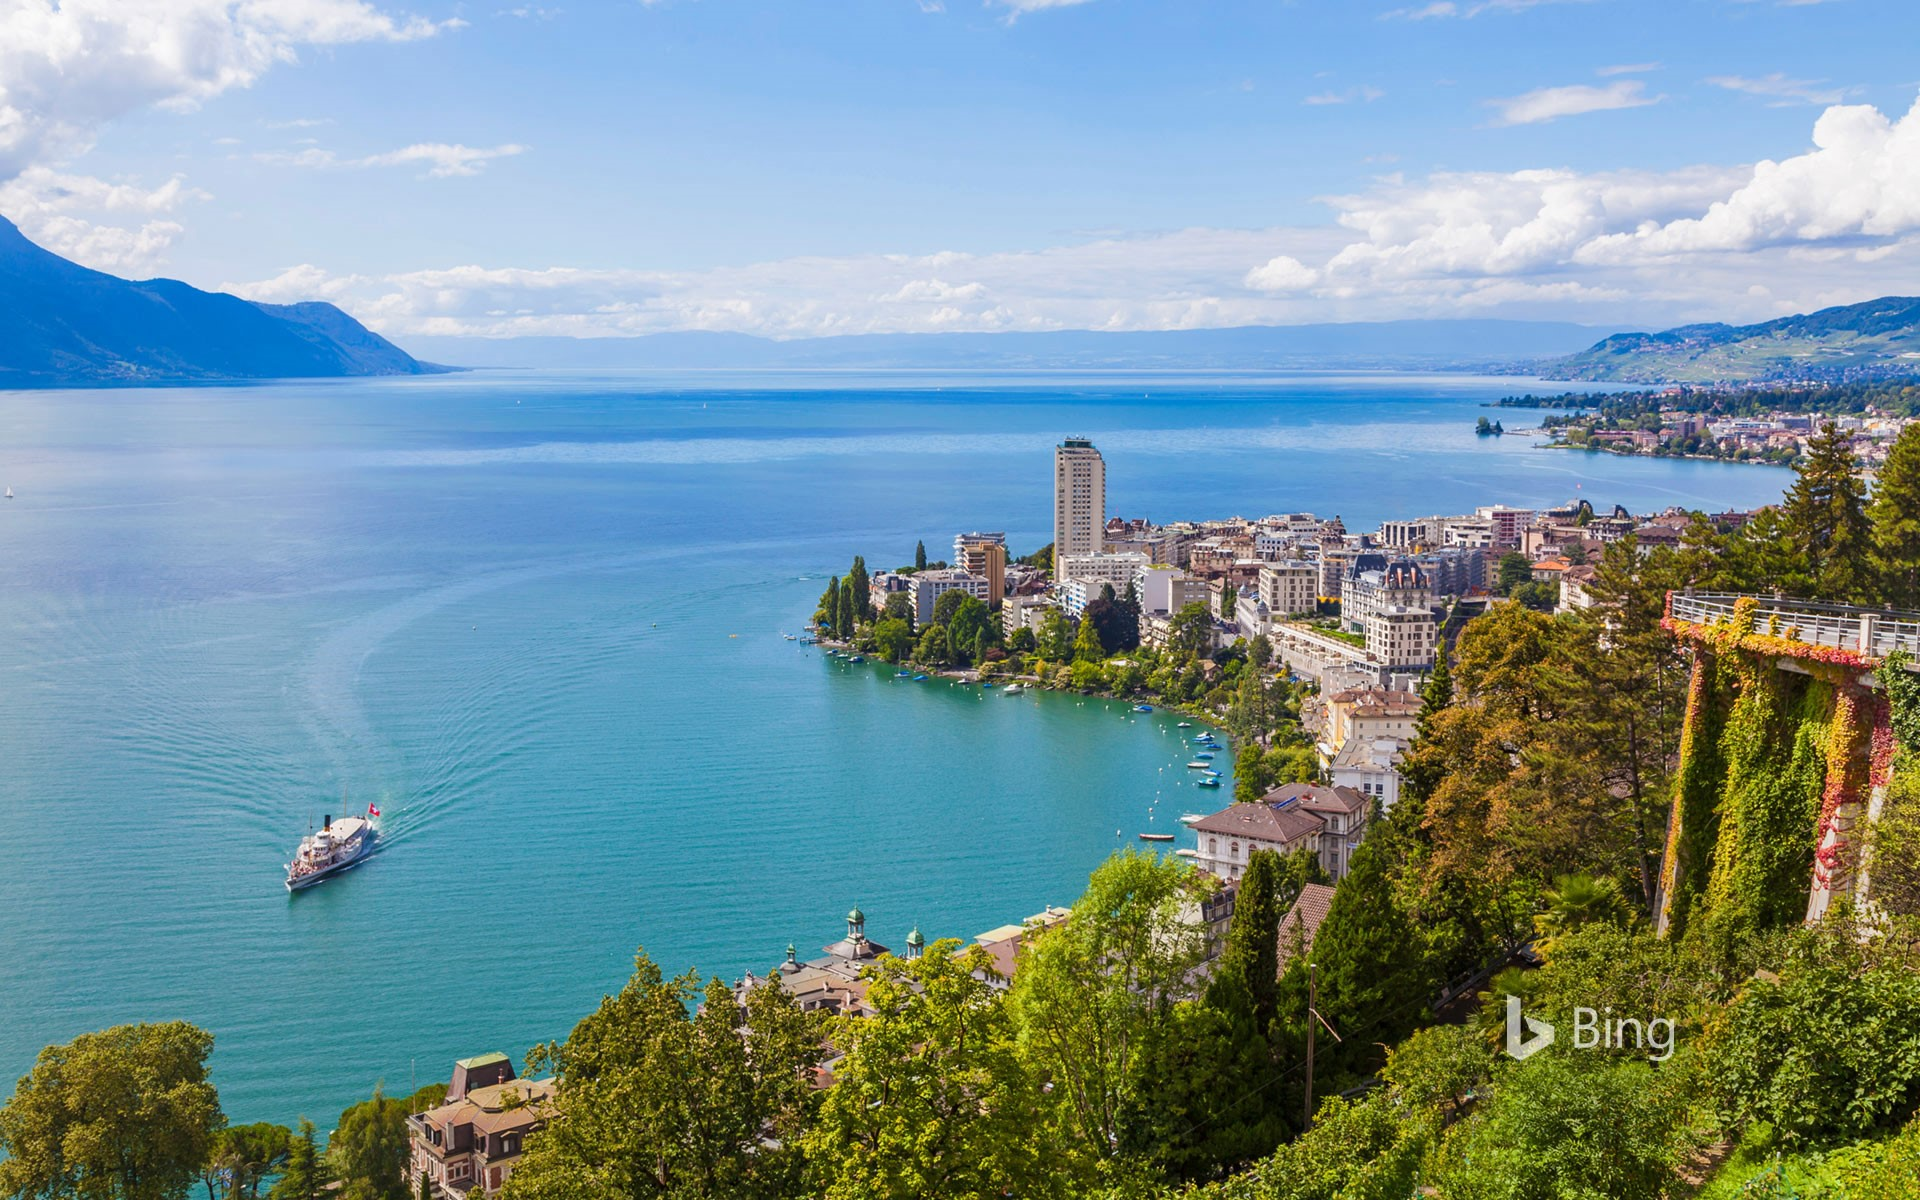 Montreux and Lake Geneva in Switzerland